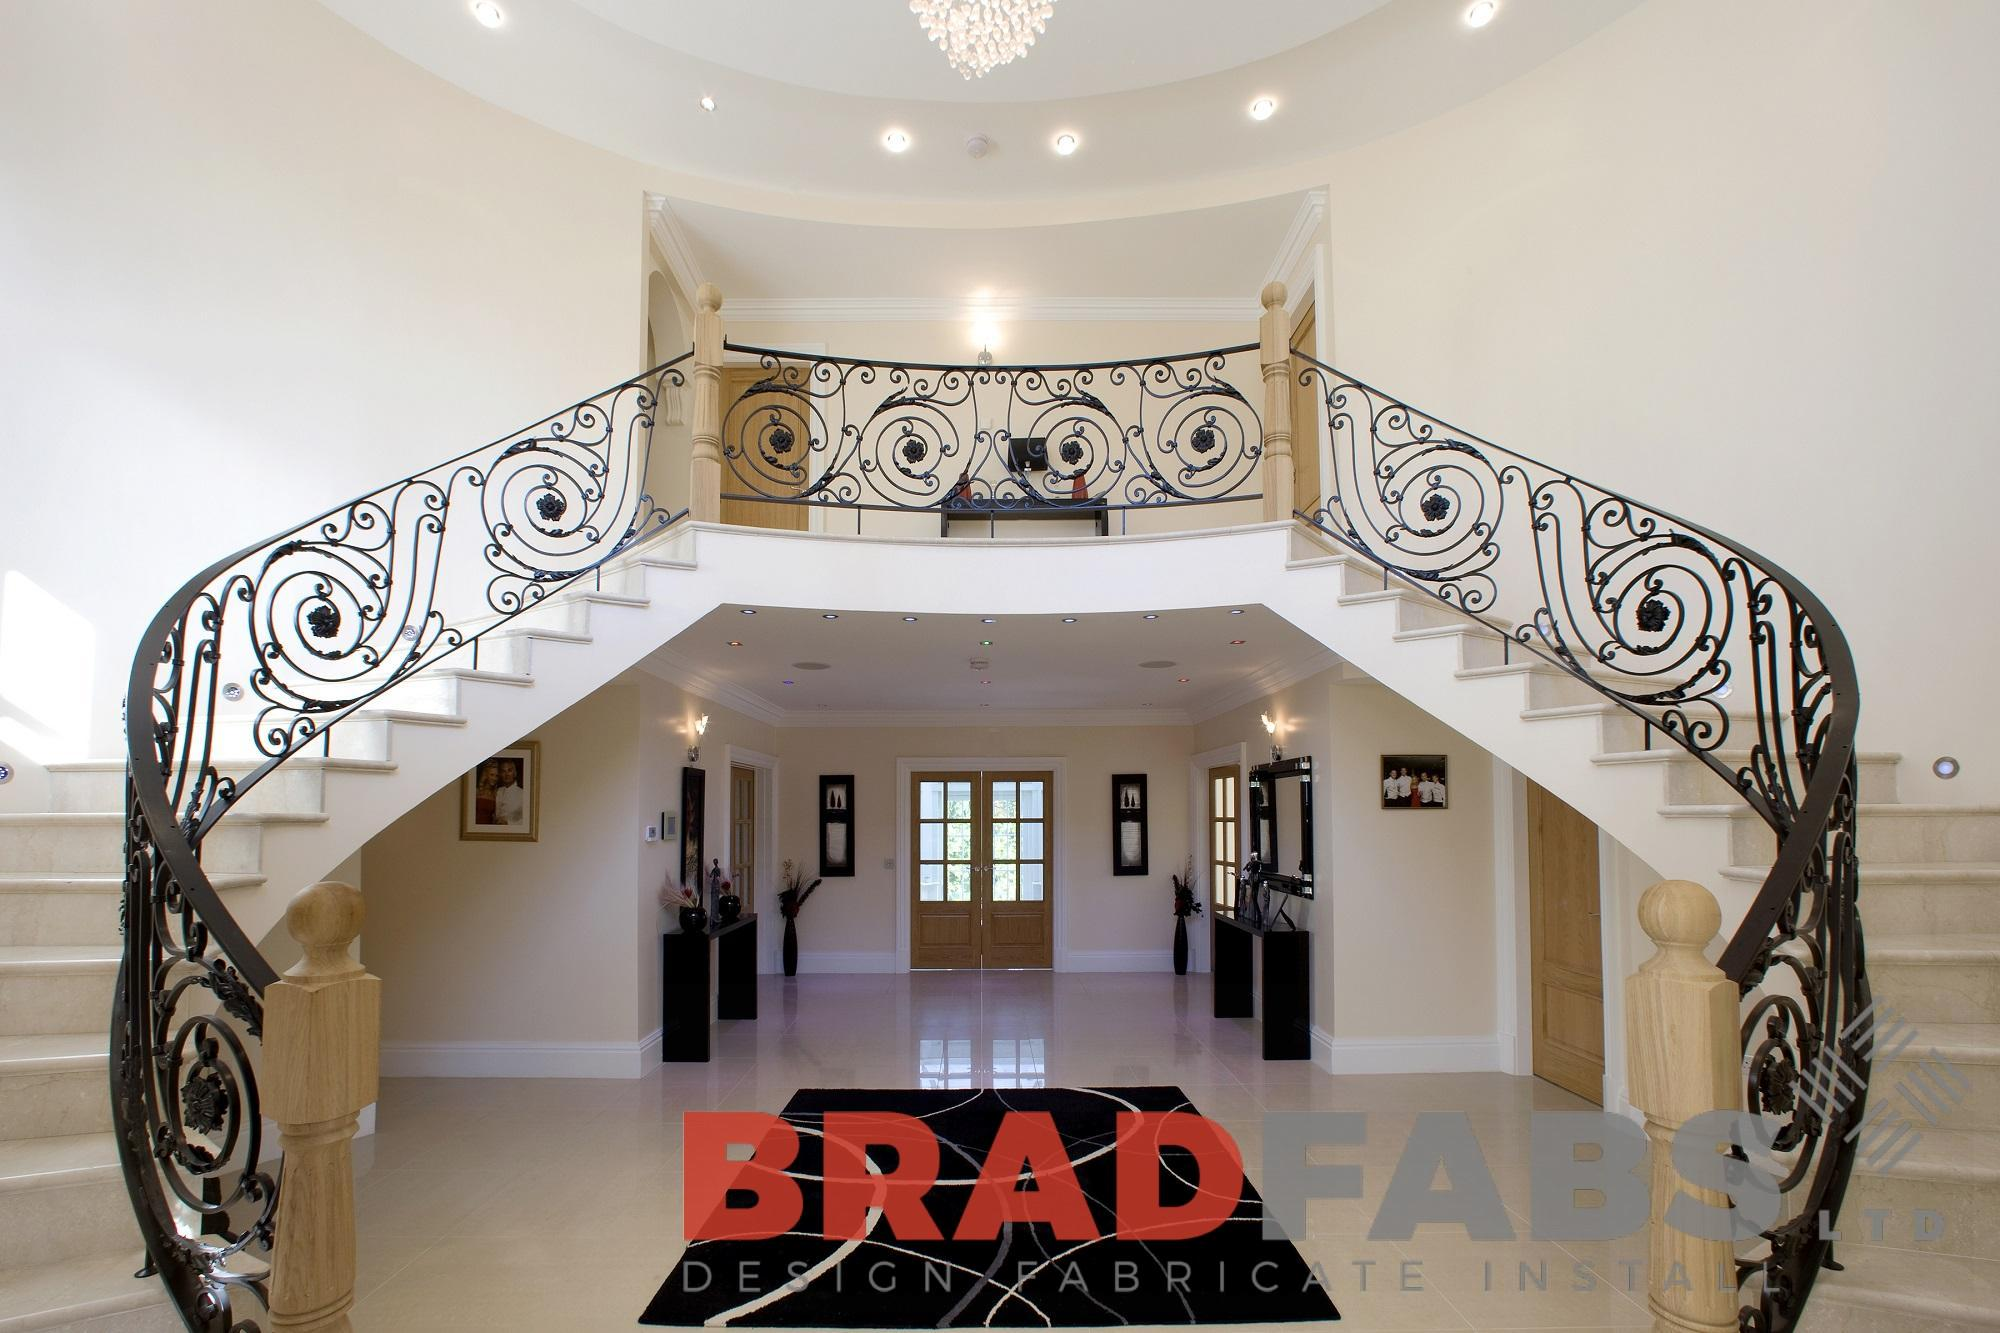 Bradfabs' favourite balustrade installations